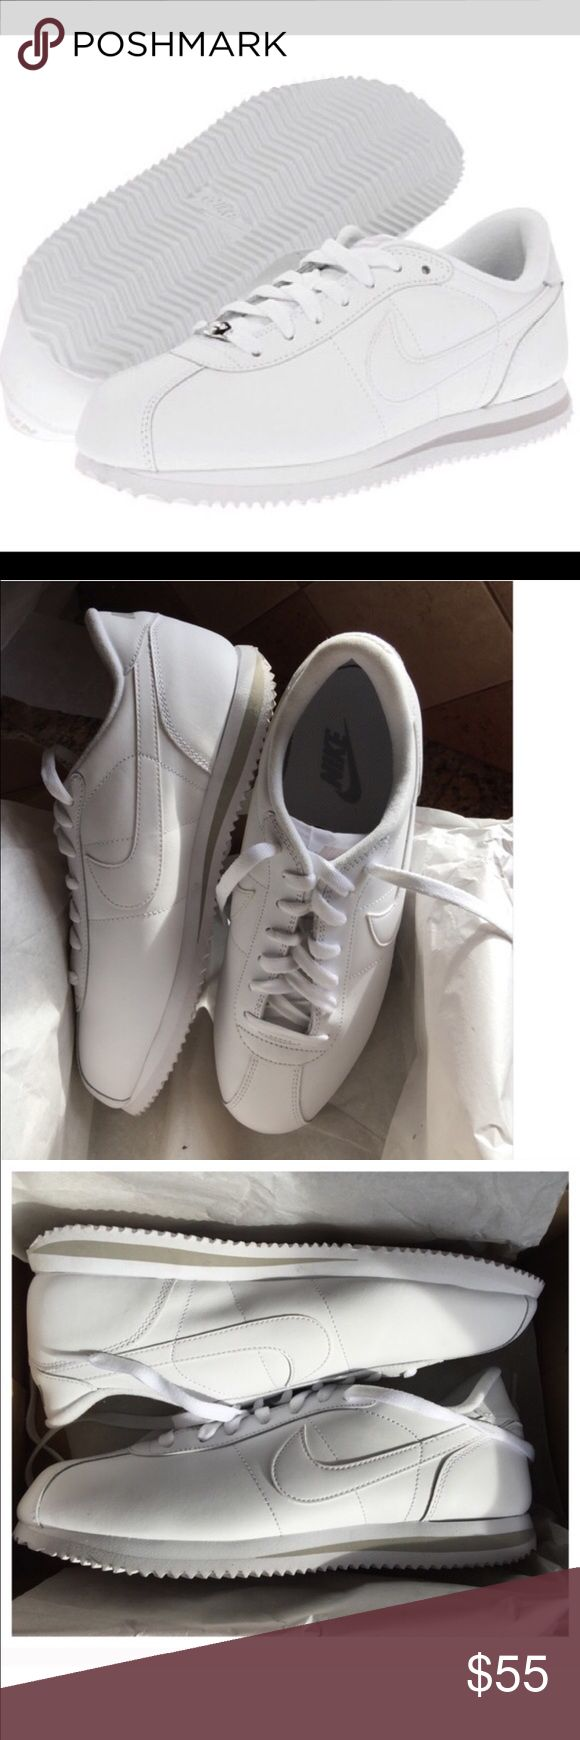 Retro Nike Cortez Mens Leather Track Tennis Shoes NWT